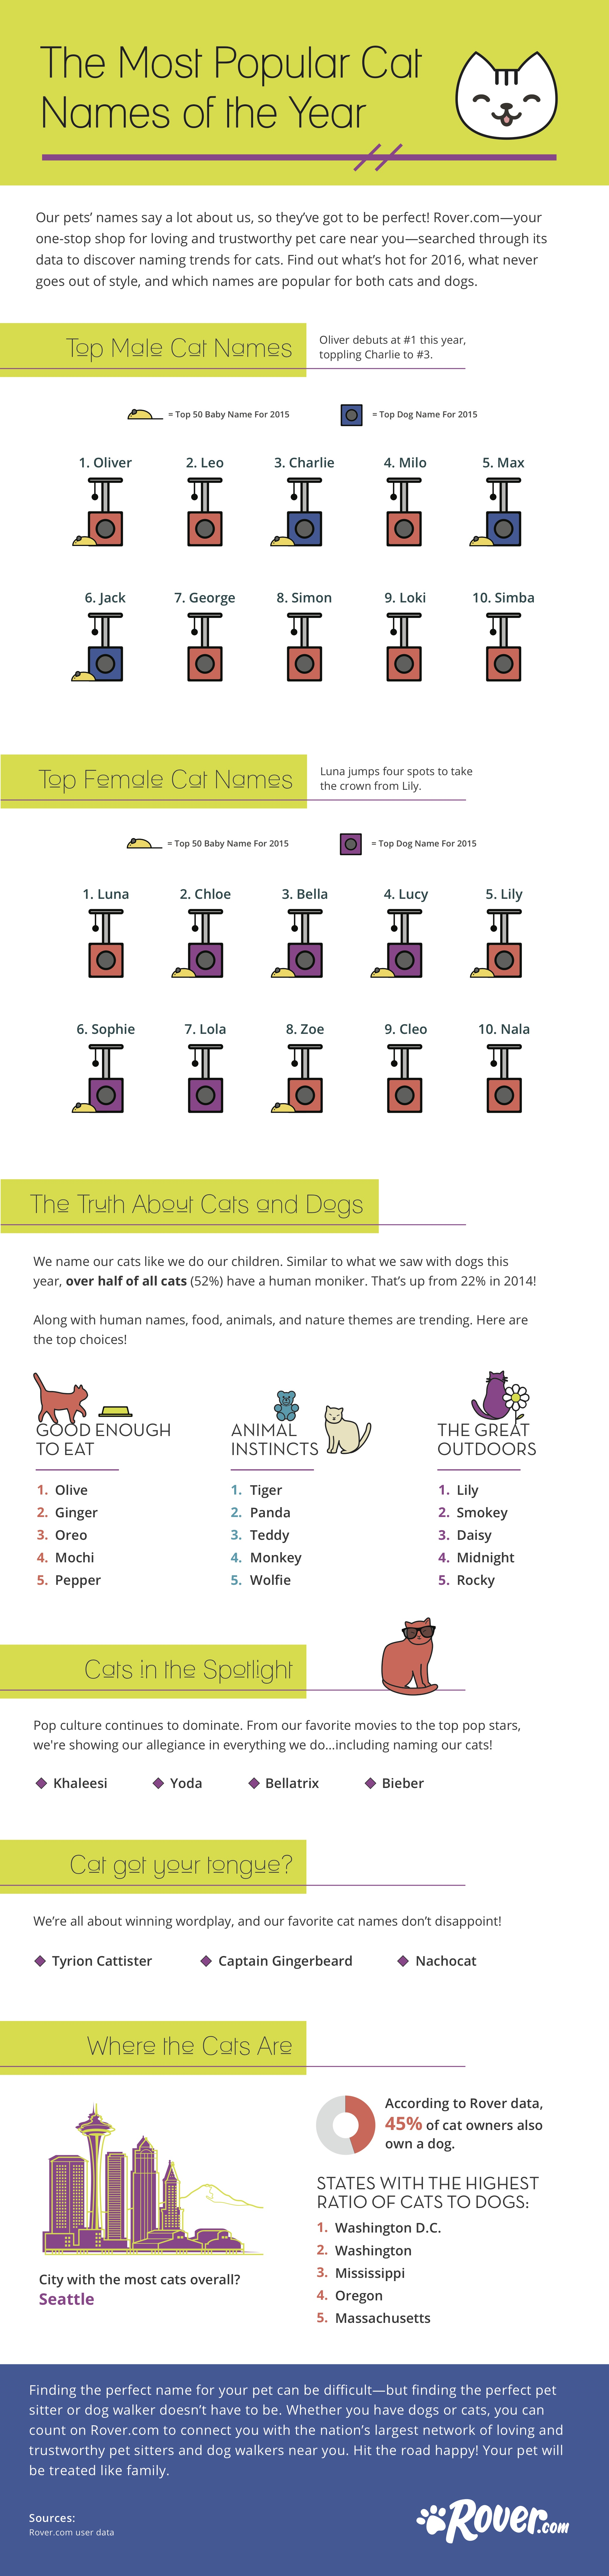 Stereotypical Dog Names